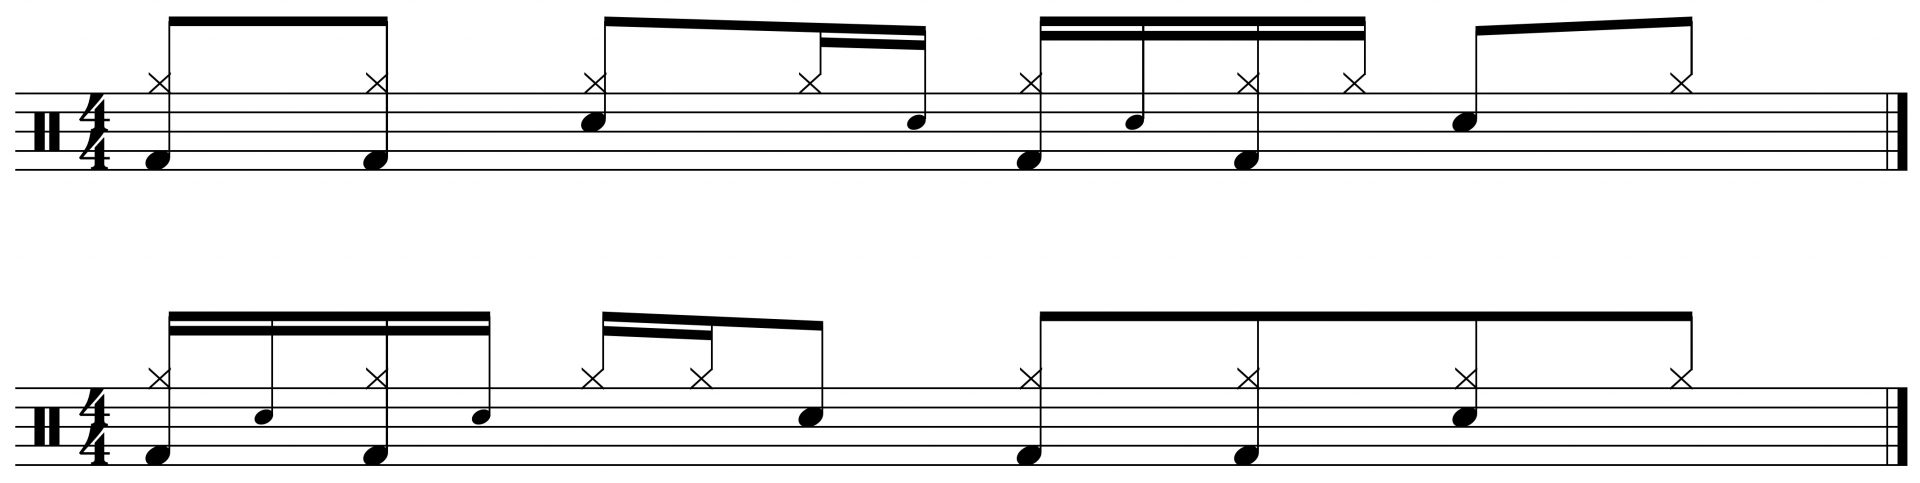 double paradiddle variations